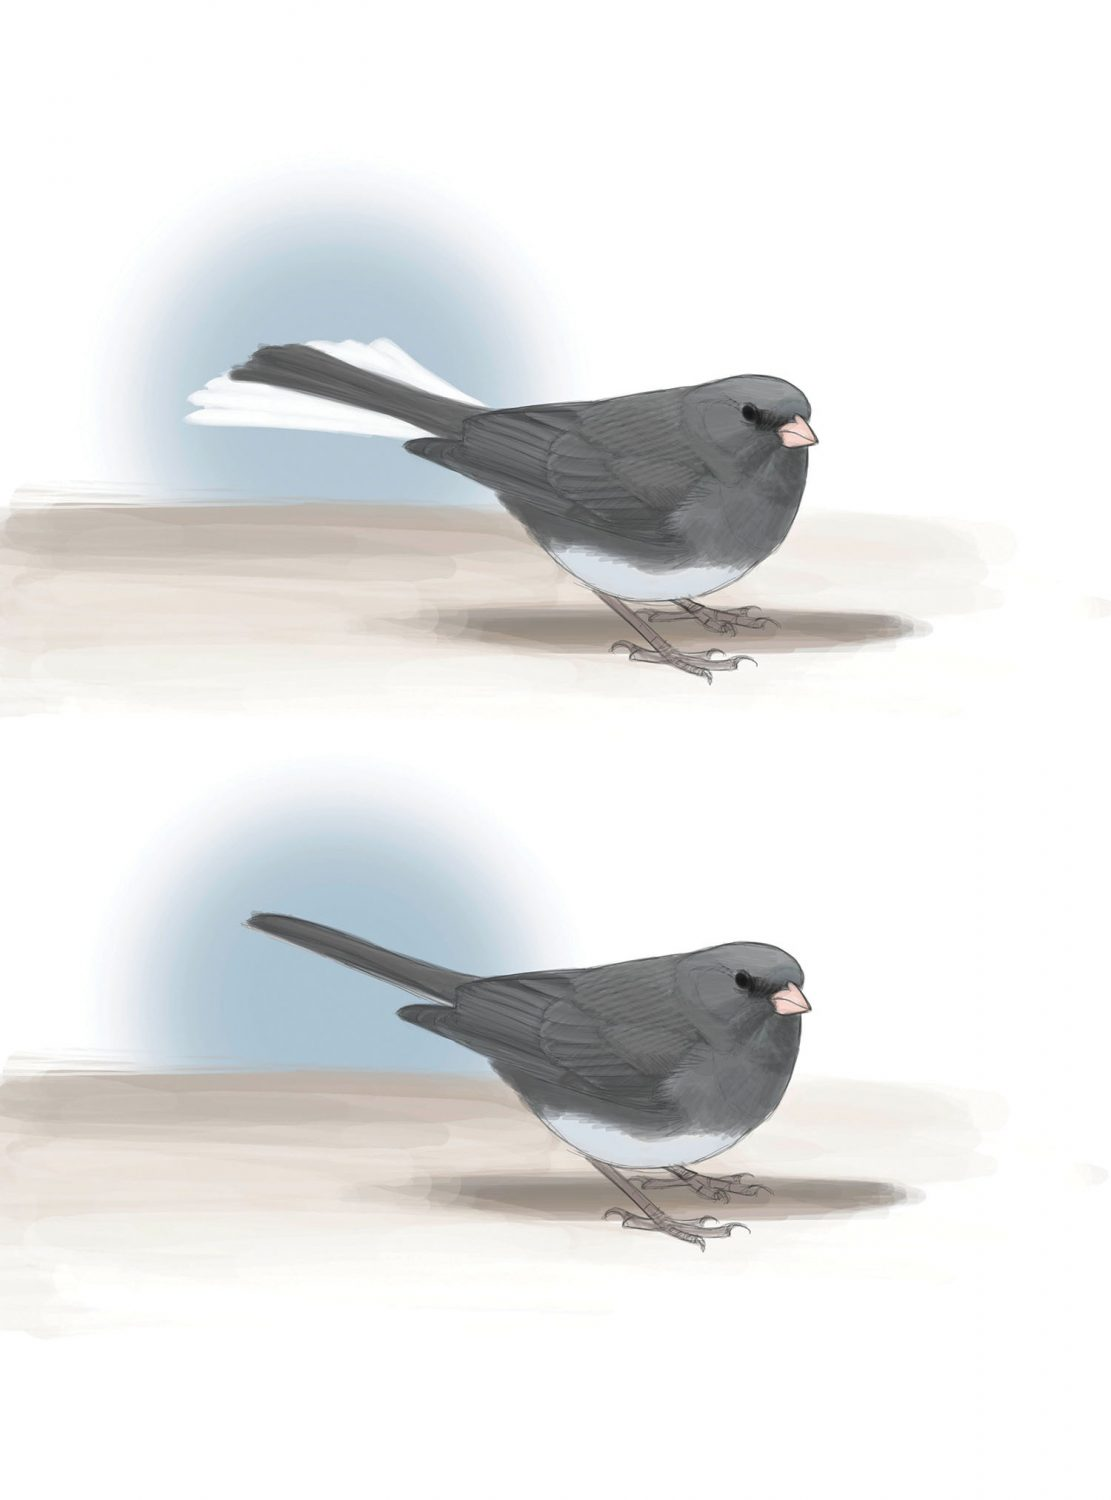 THE FLASH: A junco foraging on the ground often flicks its tail open, revealing a brief flash as the white outer tail feathers fan out from under the dark central feathers and then are hidden again under the other feathers. Illustration by David Allen Sibley